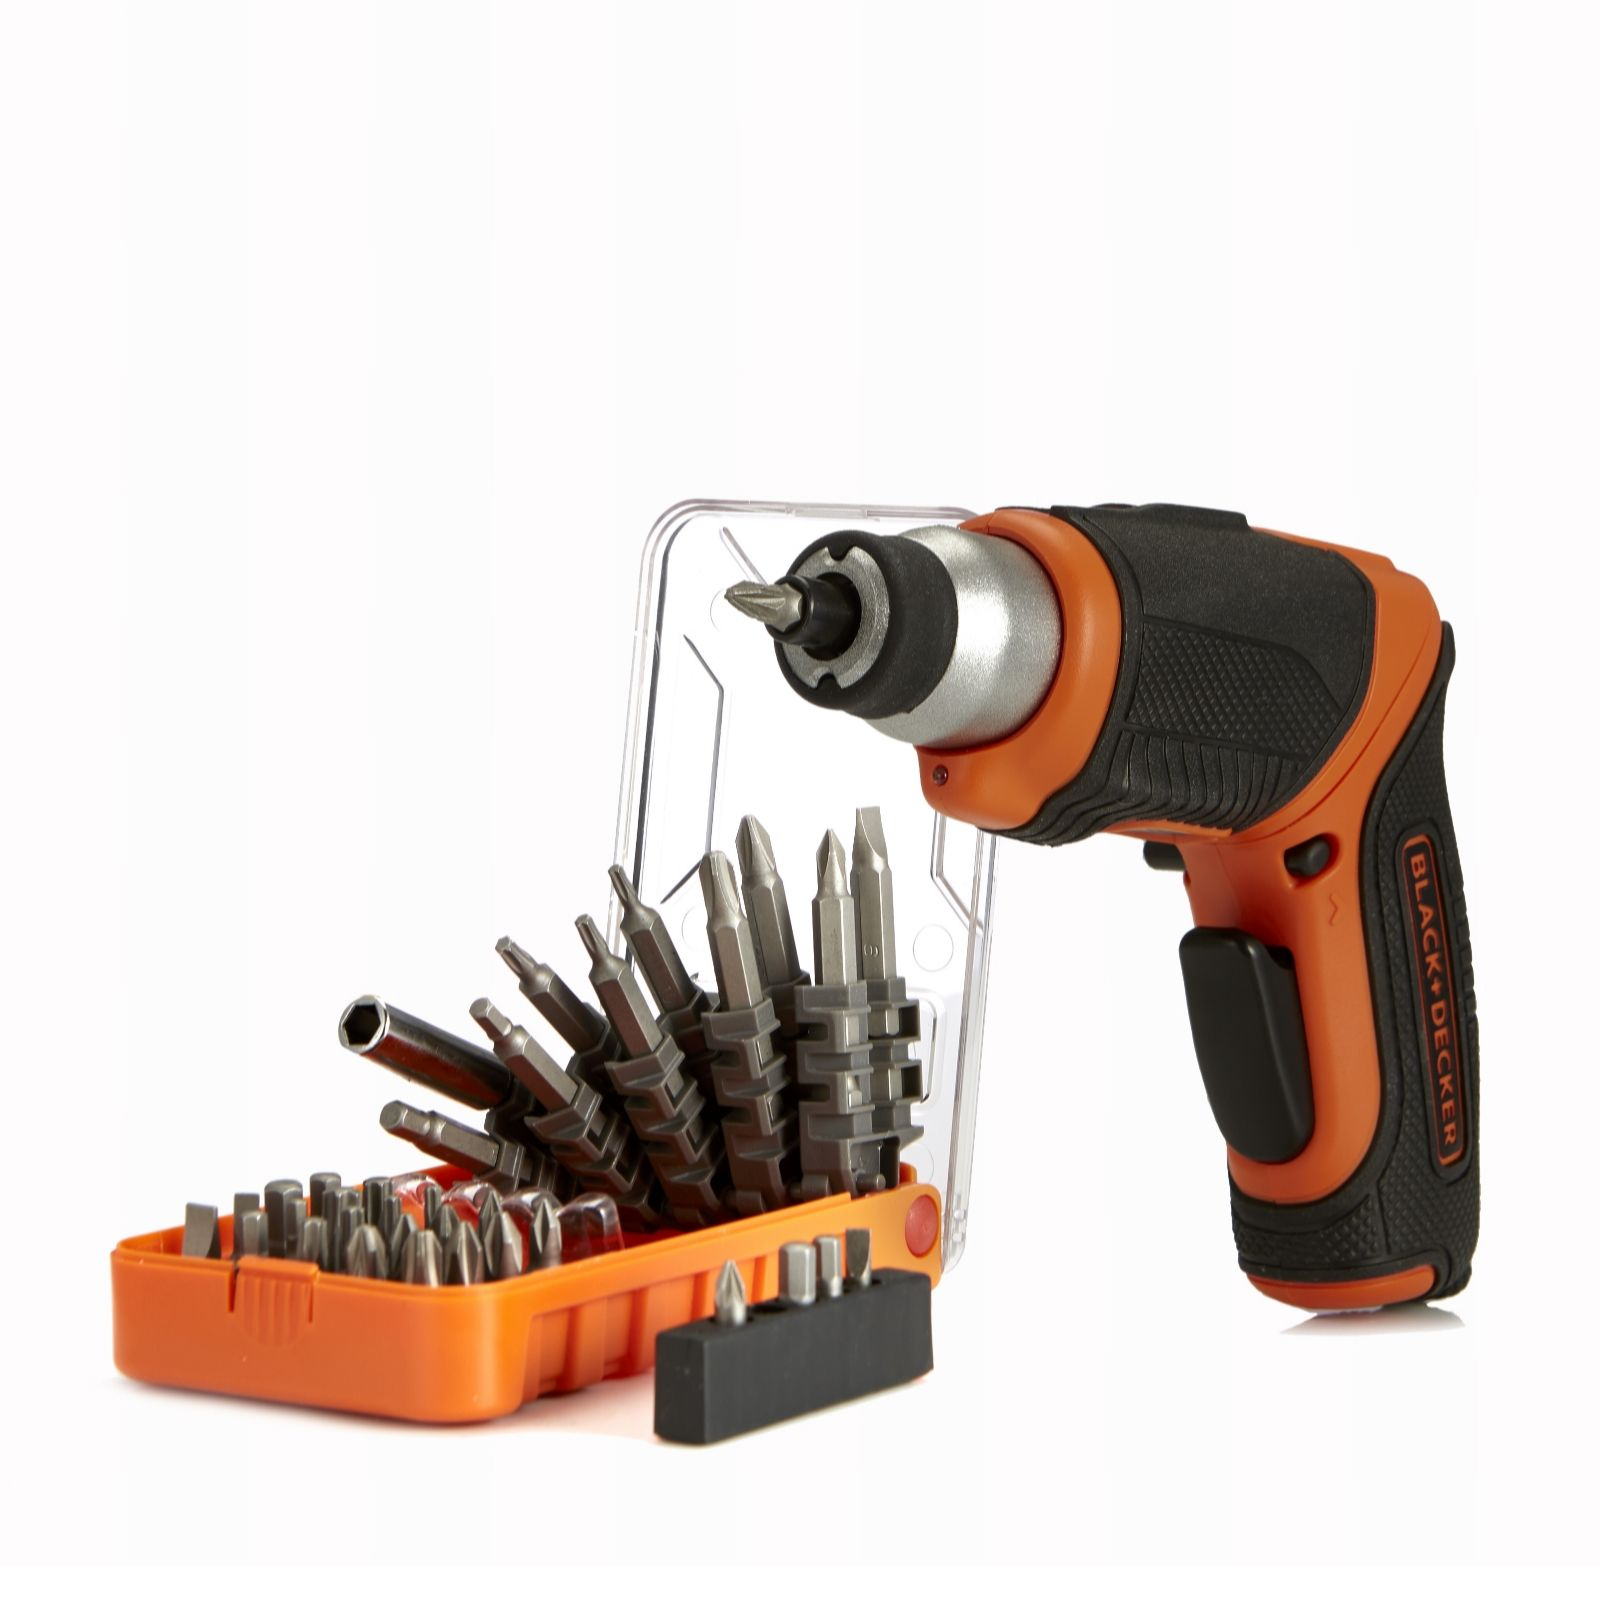 Black & Decker 3.6V Lithium Screwdriver with 30 Piece Accessory Kit